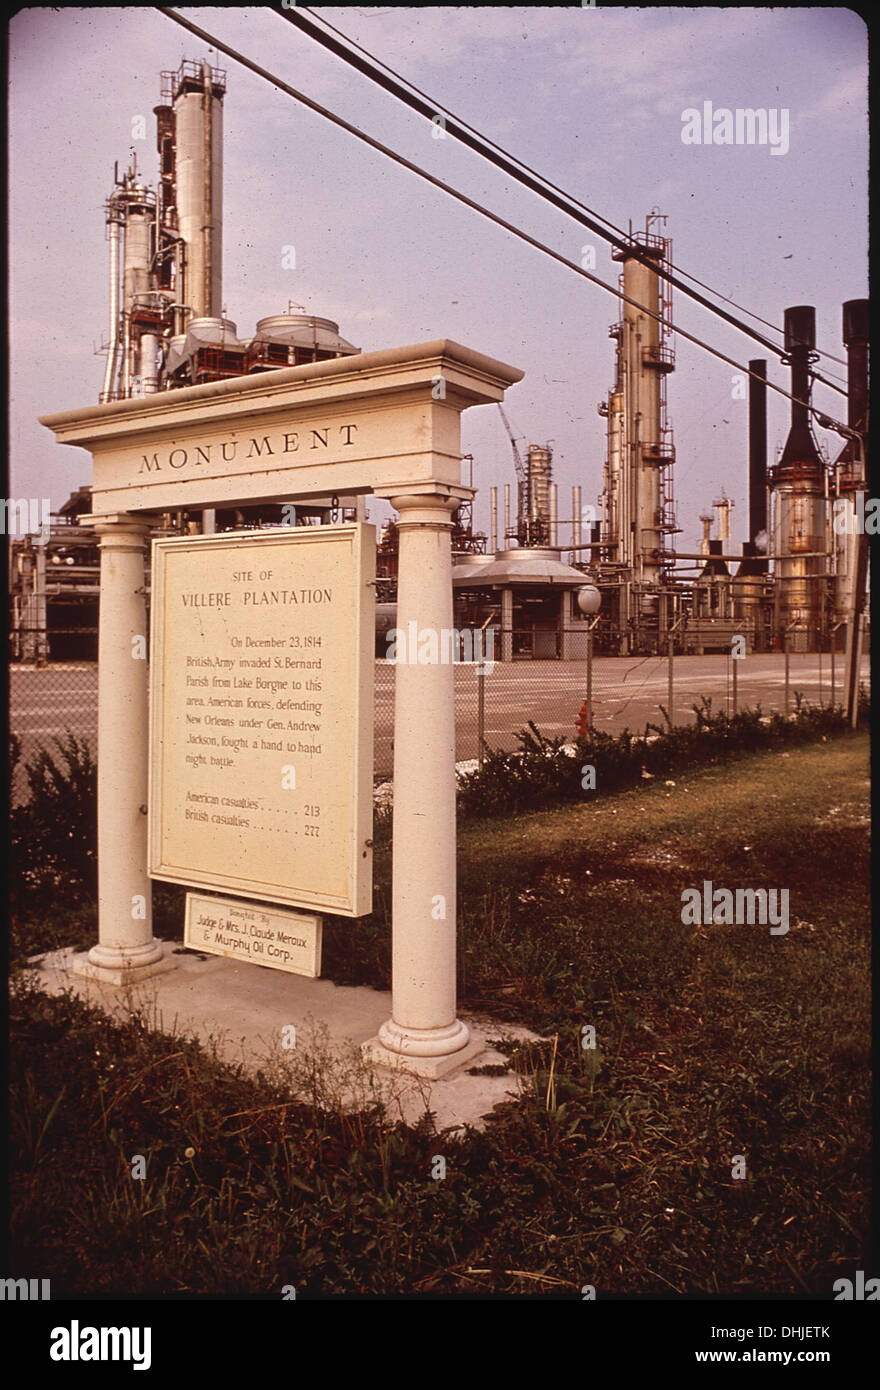 HISTORICAL MARKER NOTING PLANTATION SITE STANDS AT ENTRANCE TO REFINERY 286 - Stock Image